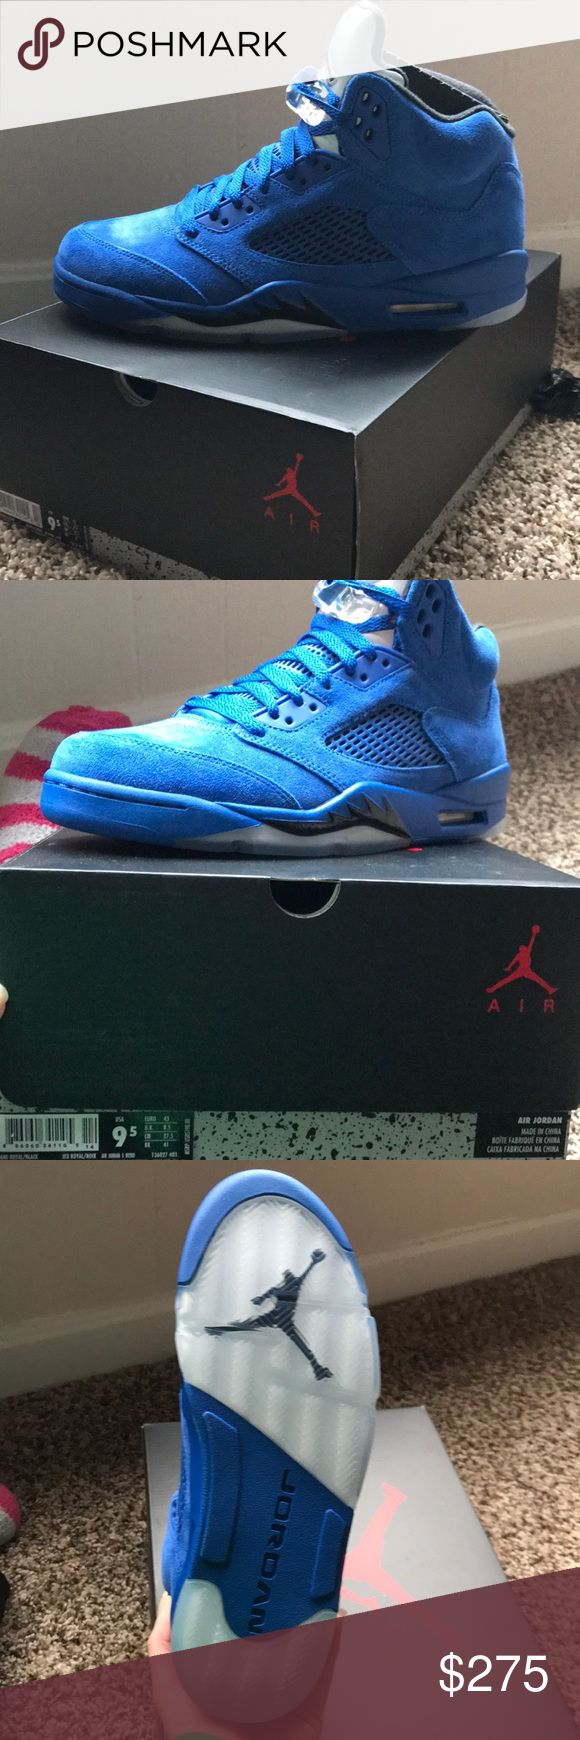 Air Jordan 5 Retro Royal Blue Retail $190. BRAND NEW, NEVER WORN. Dead stock!! Meaning not available in stores. Shoes Sneakers